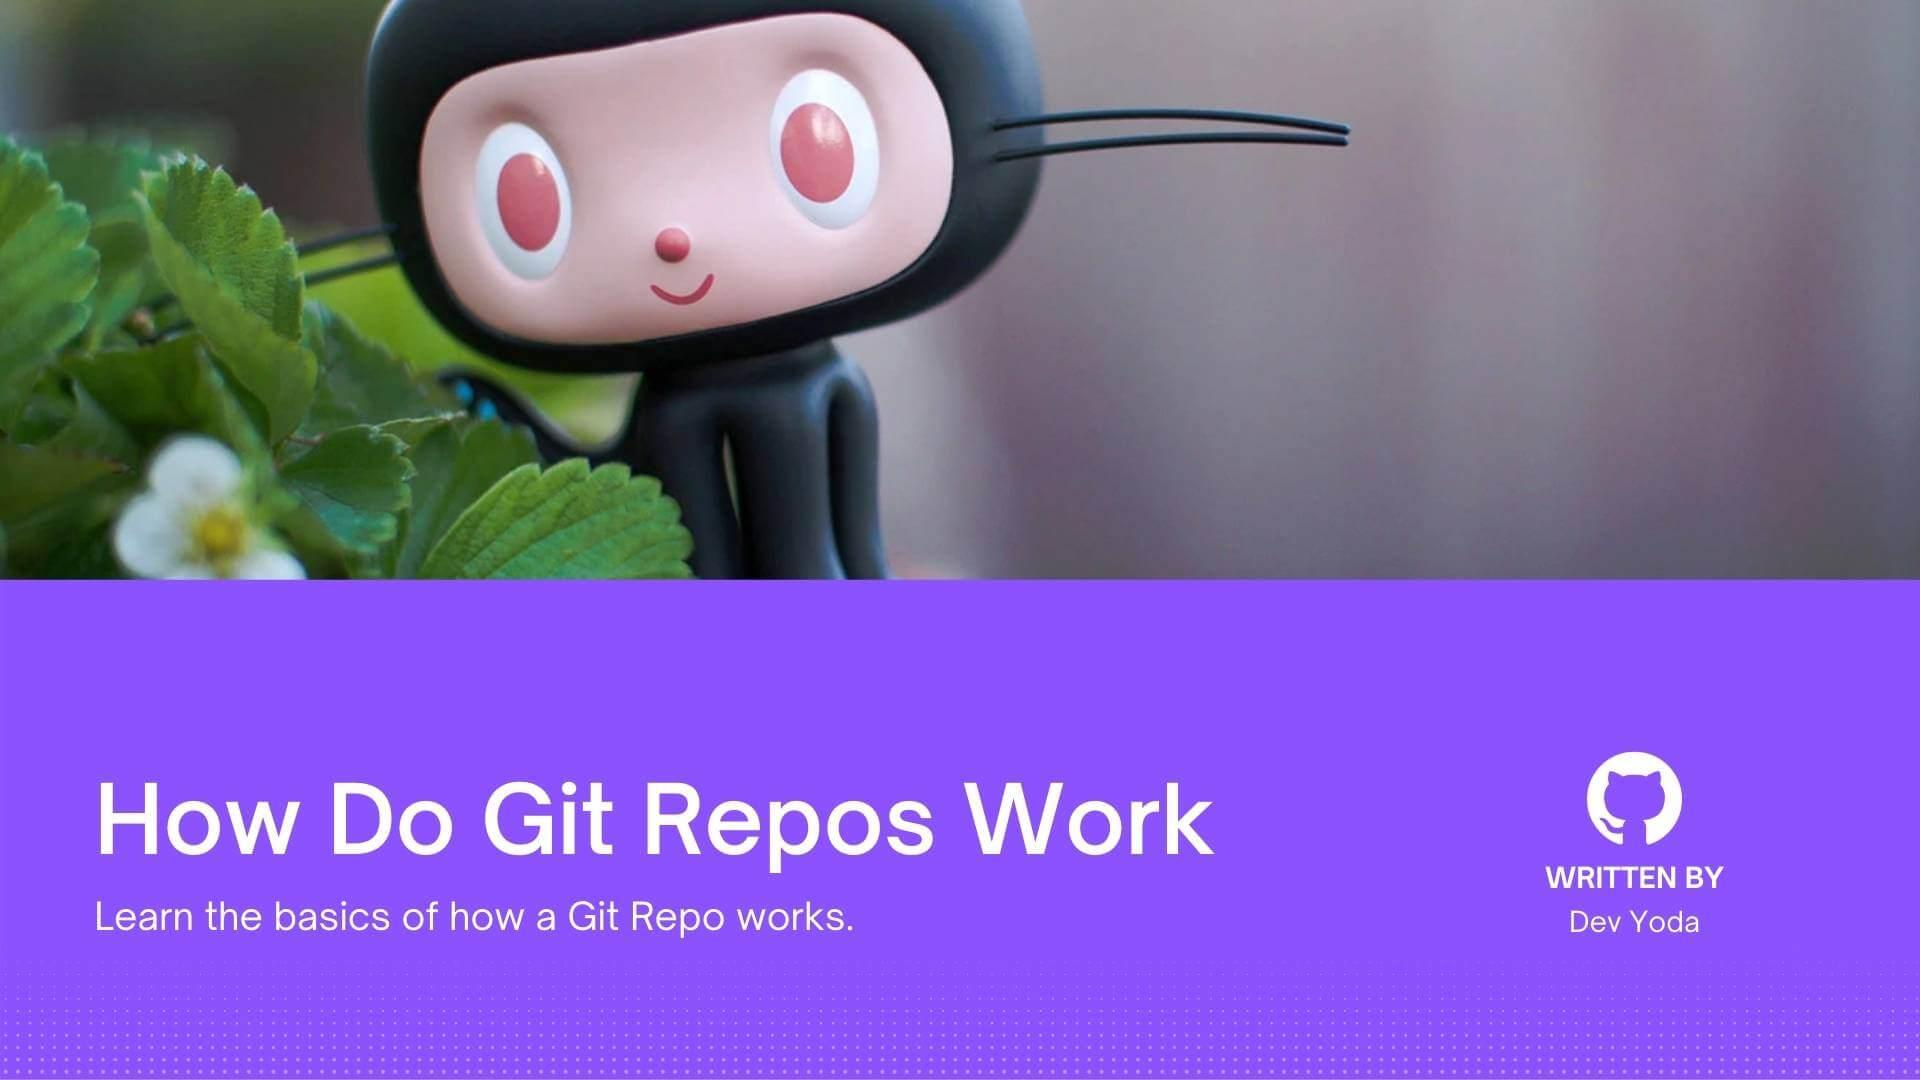 How Do Git Repositories Work?